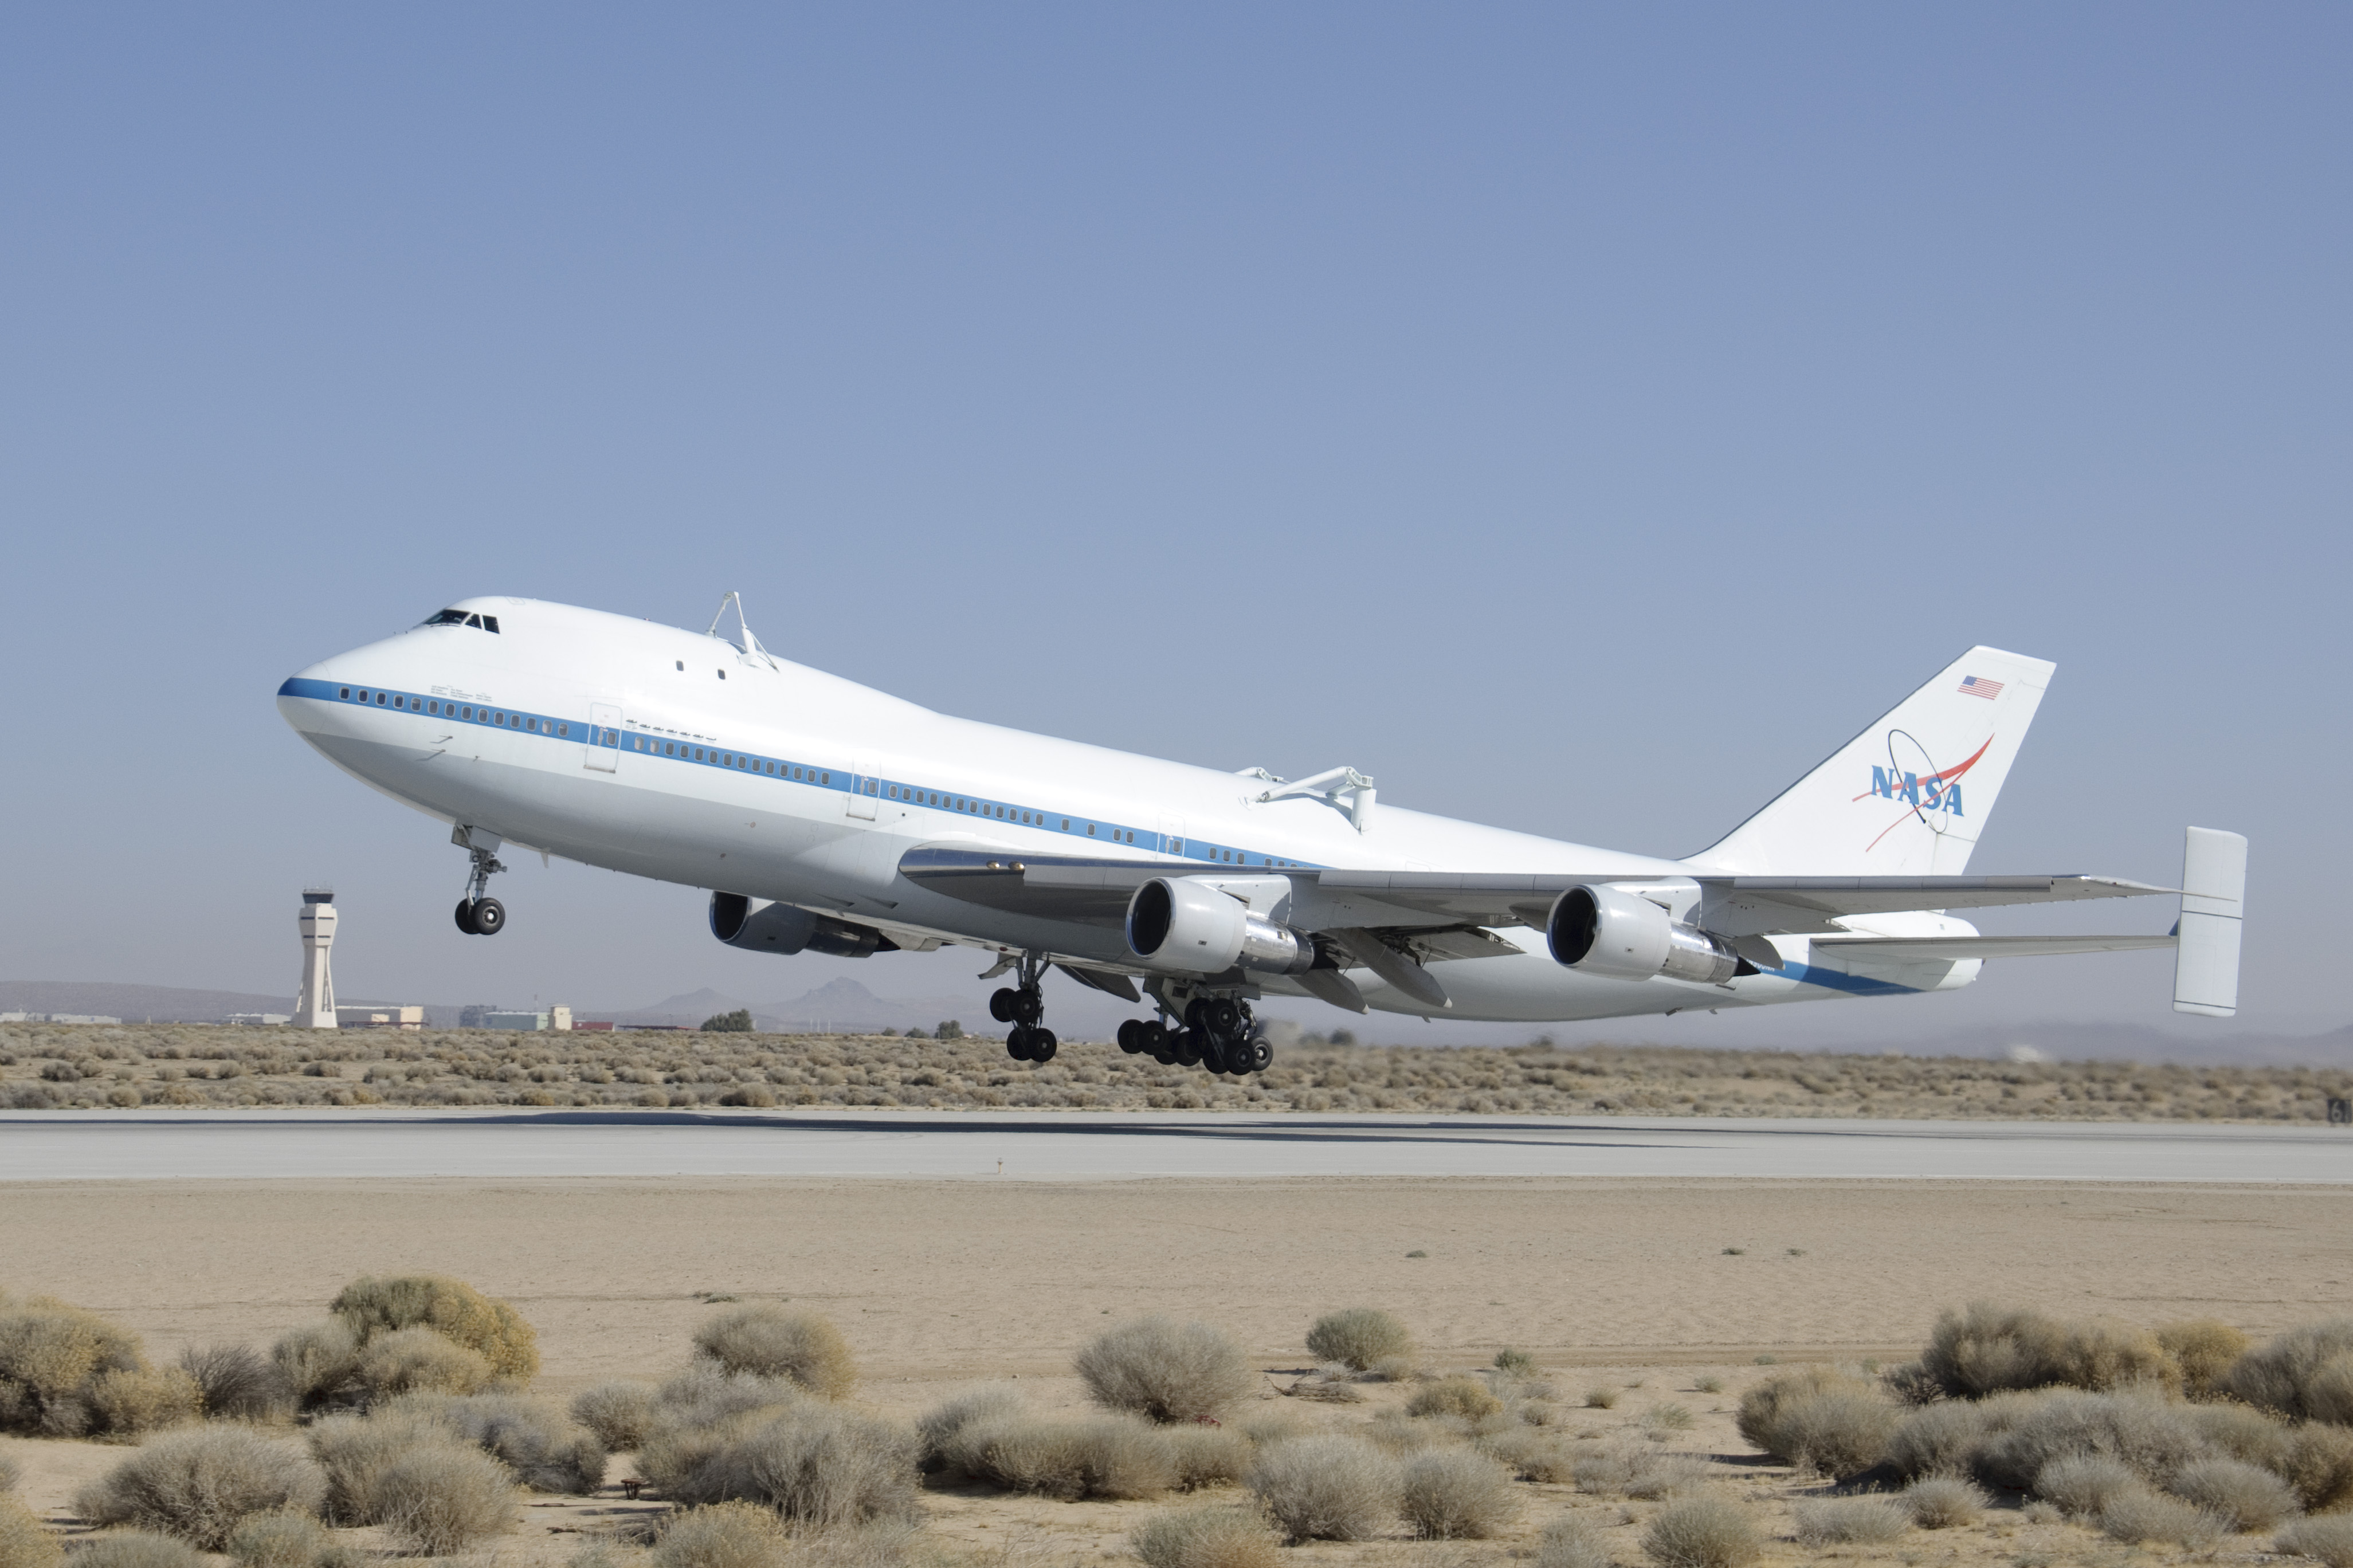 kelly afb space shuttle carrier aircraft - photo #17